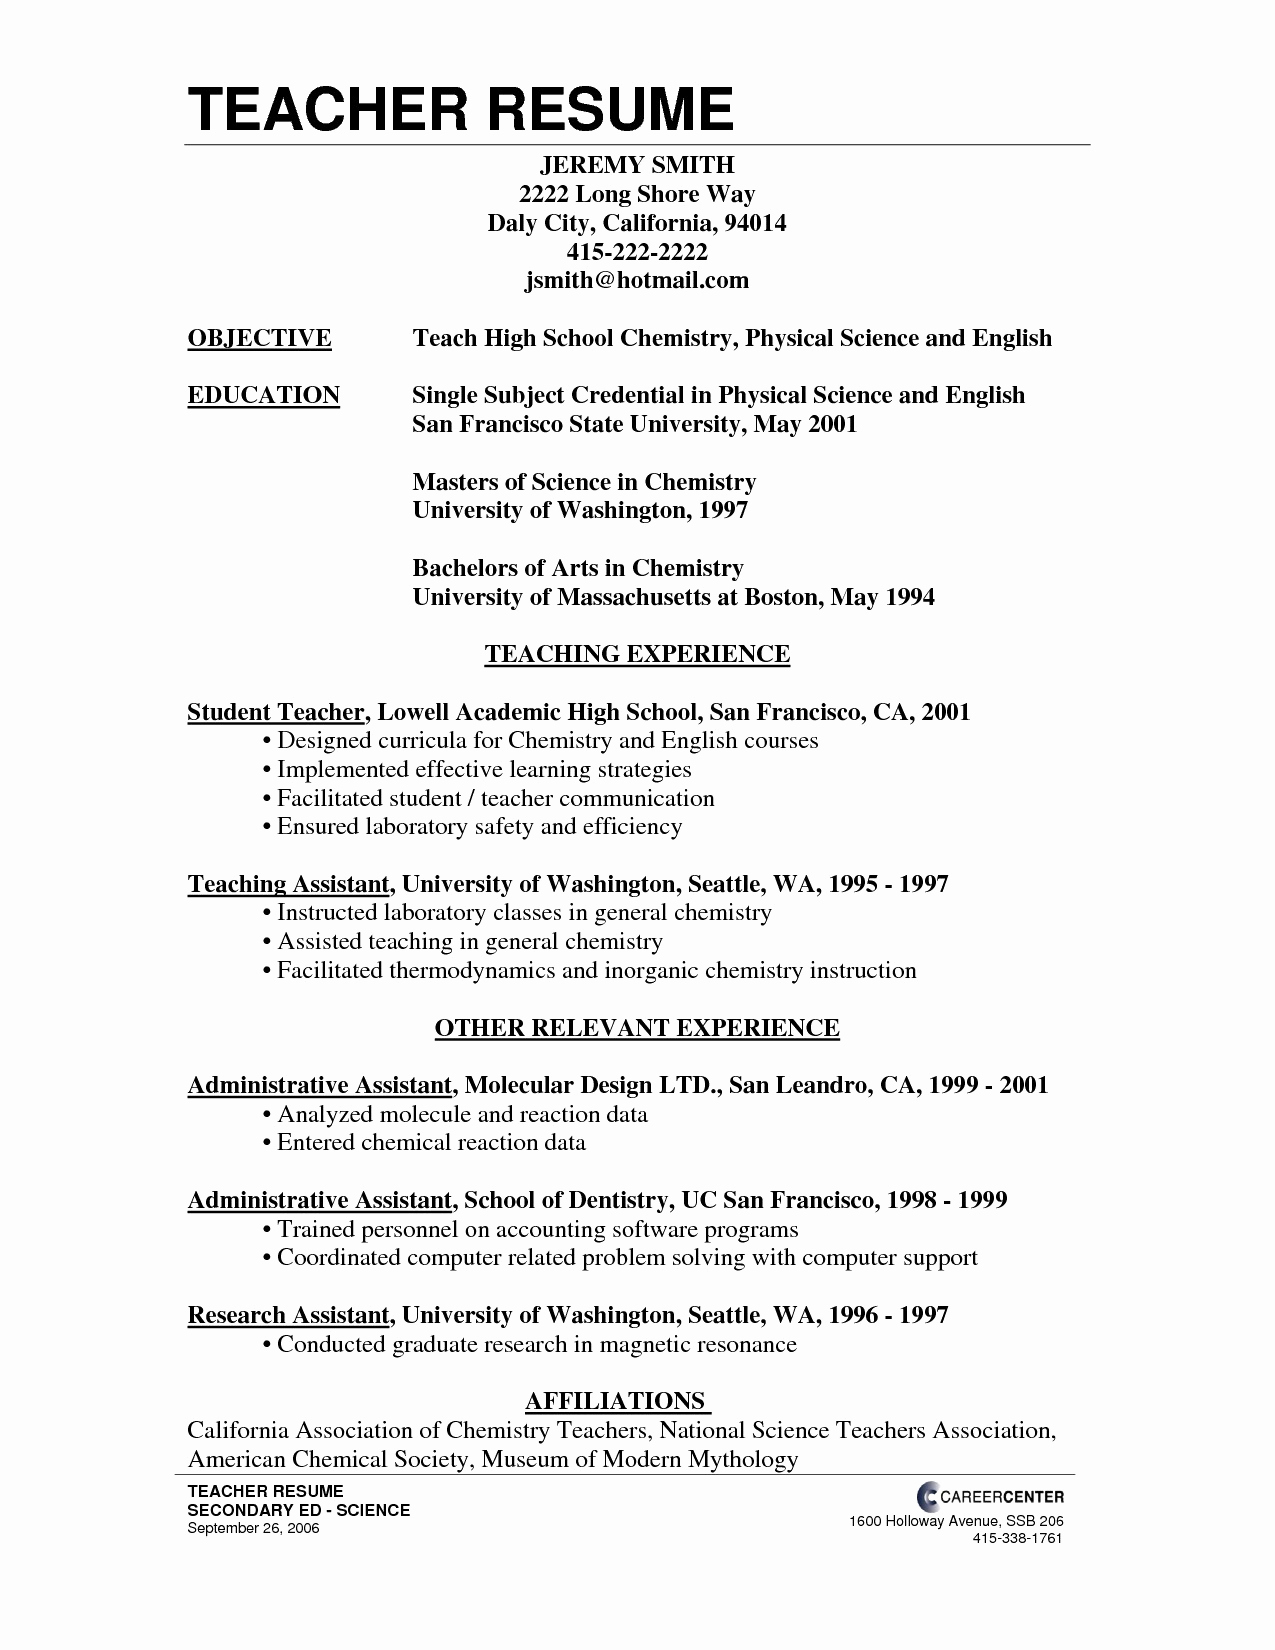 Amazing Cover Letter Template - Resume Cover Letter Example New Free Cover Letter Templates Examples